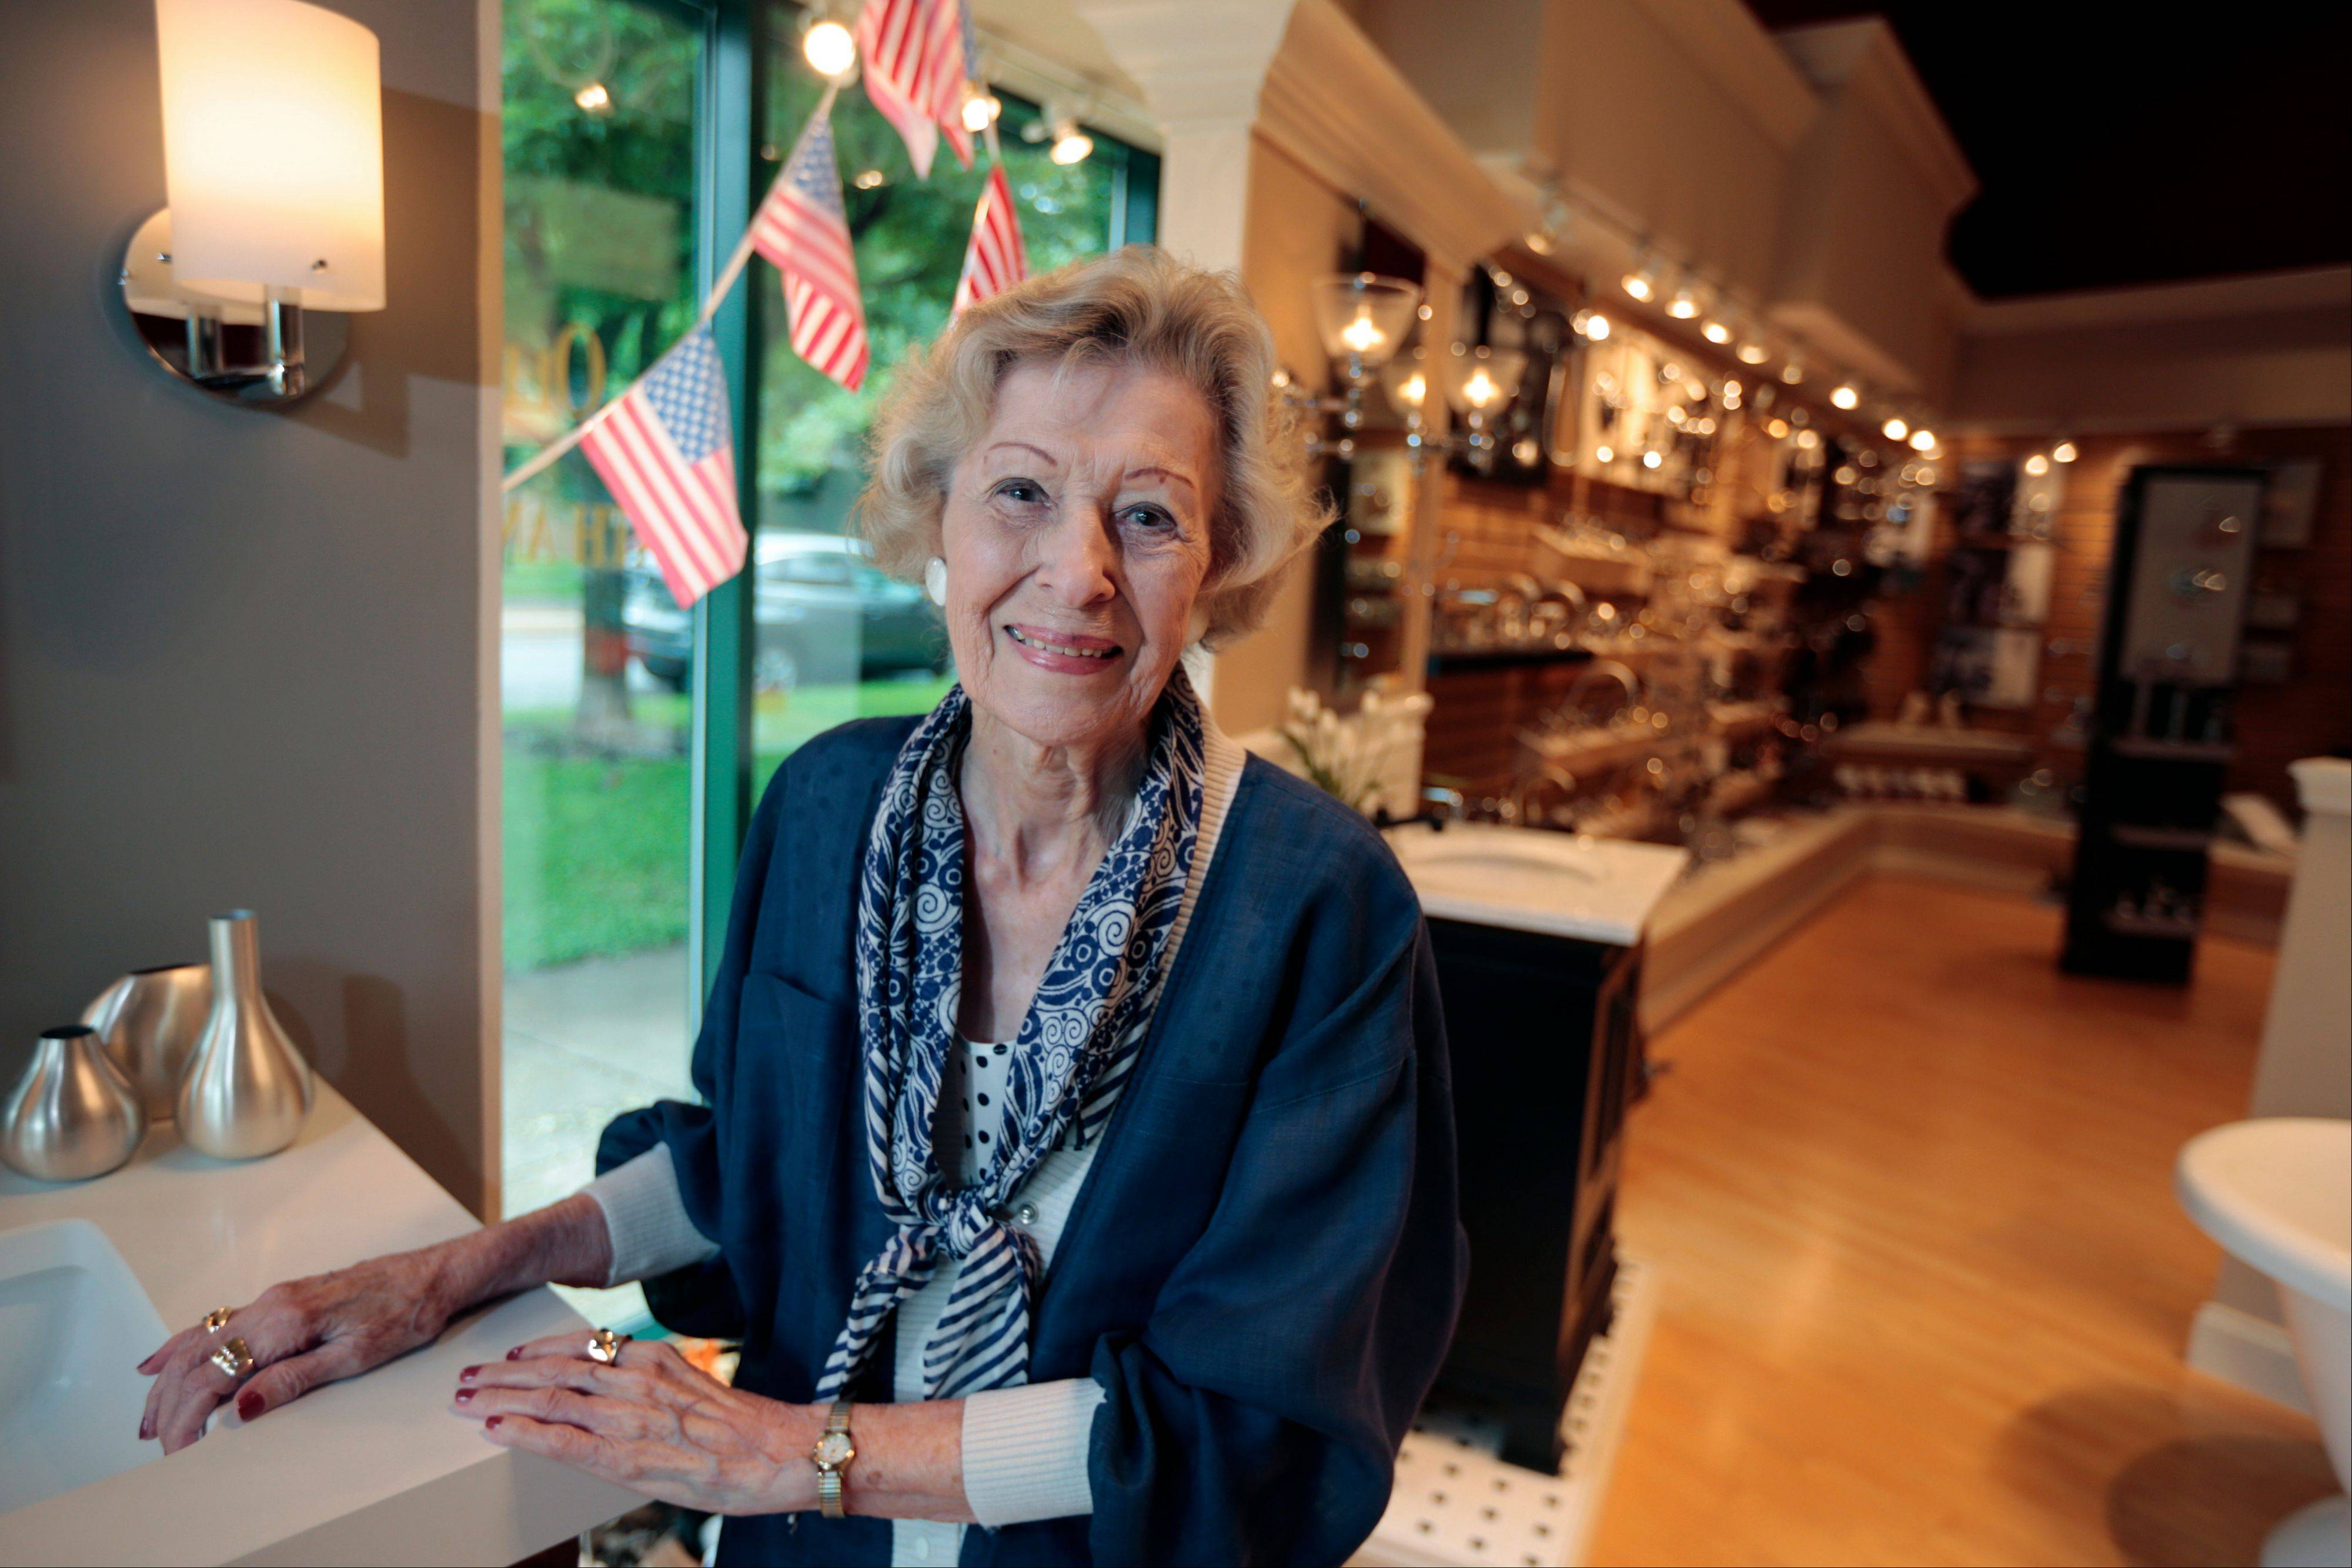 June Springer, who just turned 90, works as a receptionist at Caffi Contracting Services in Alexandria, Va. S